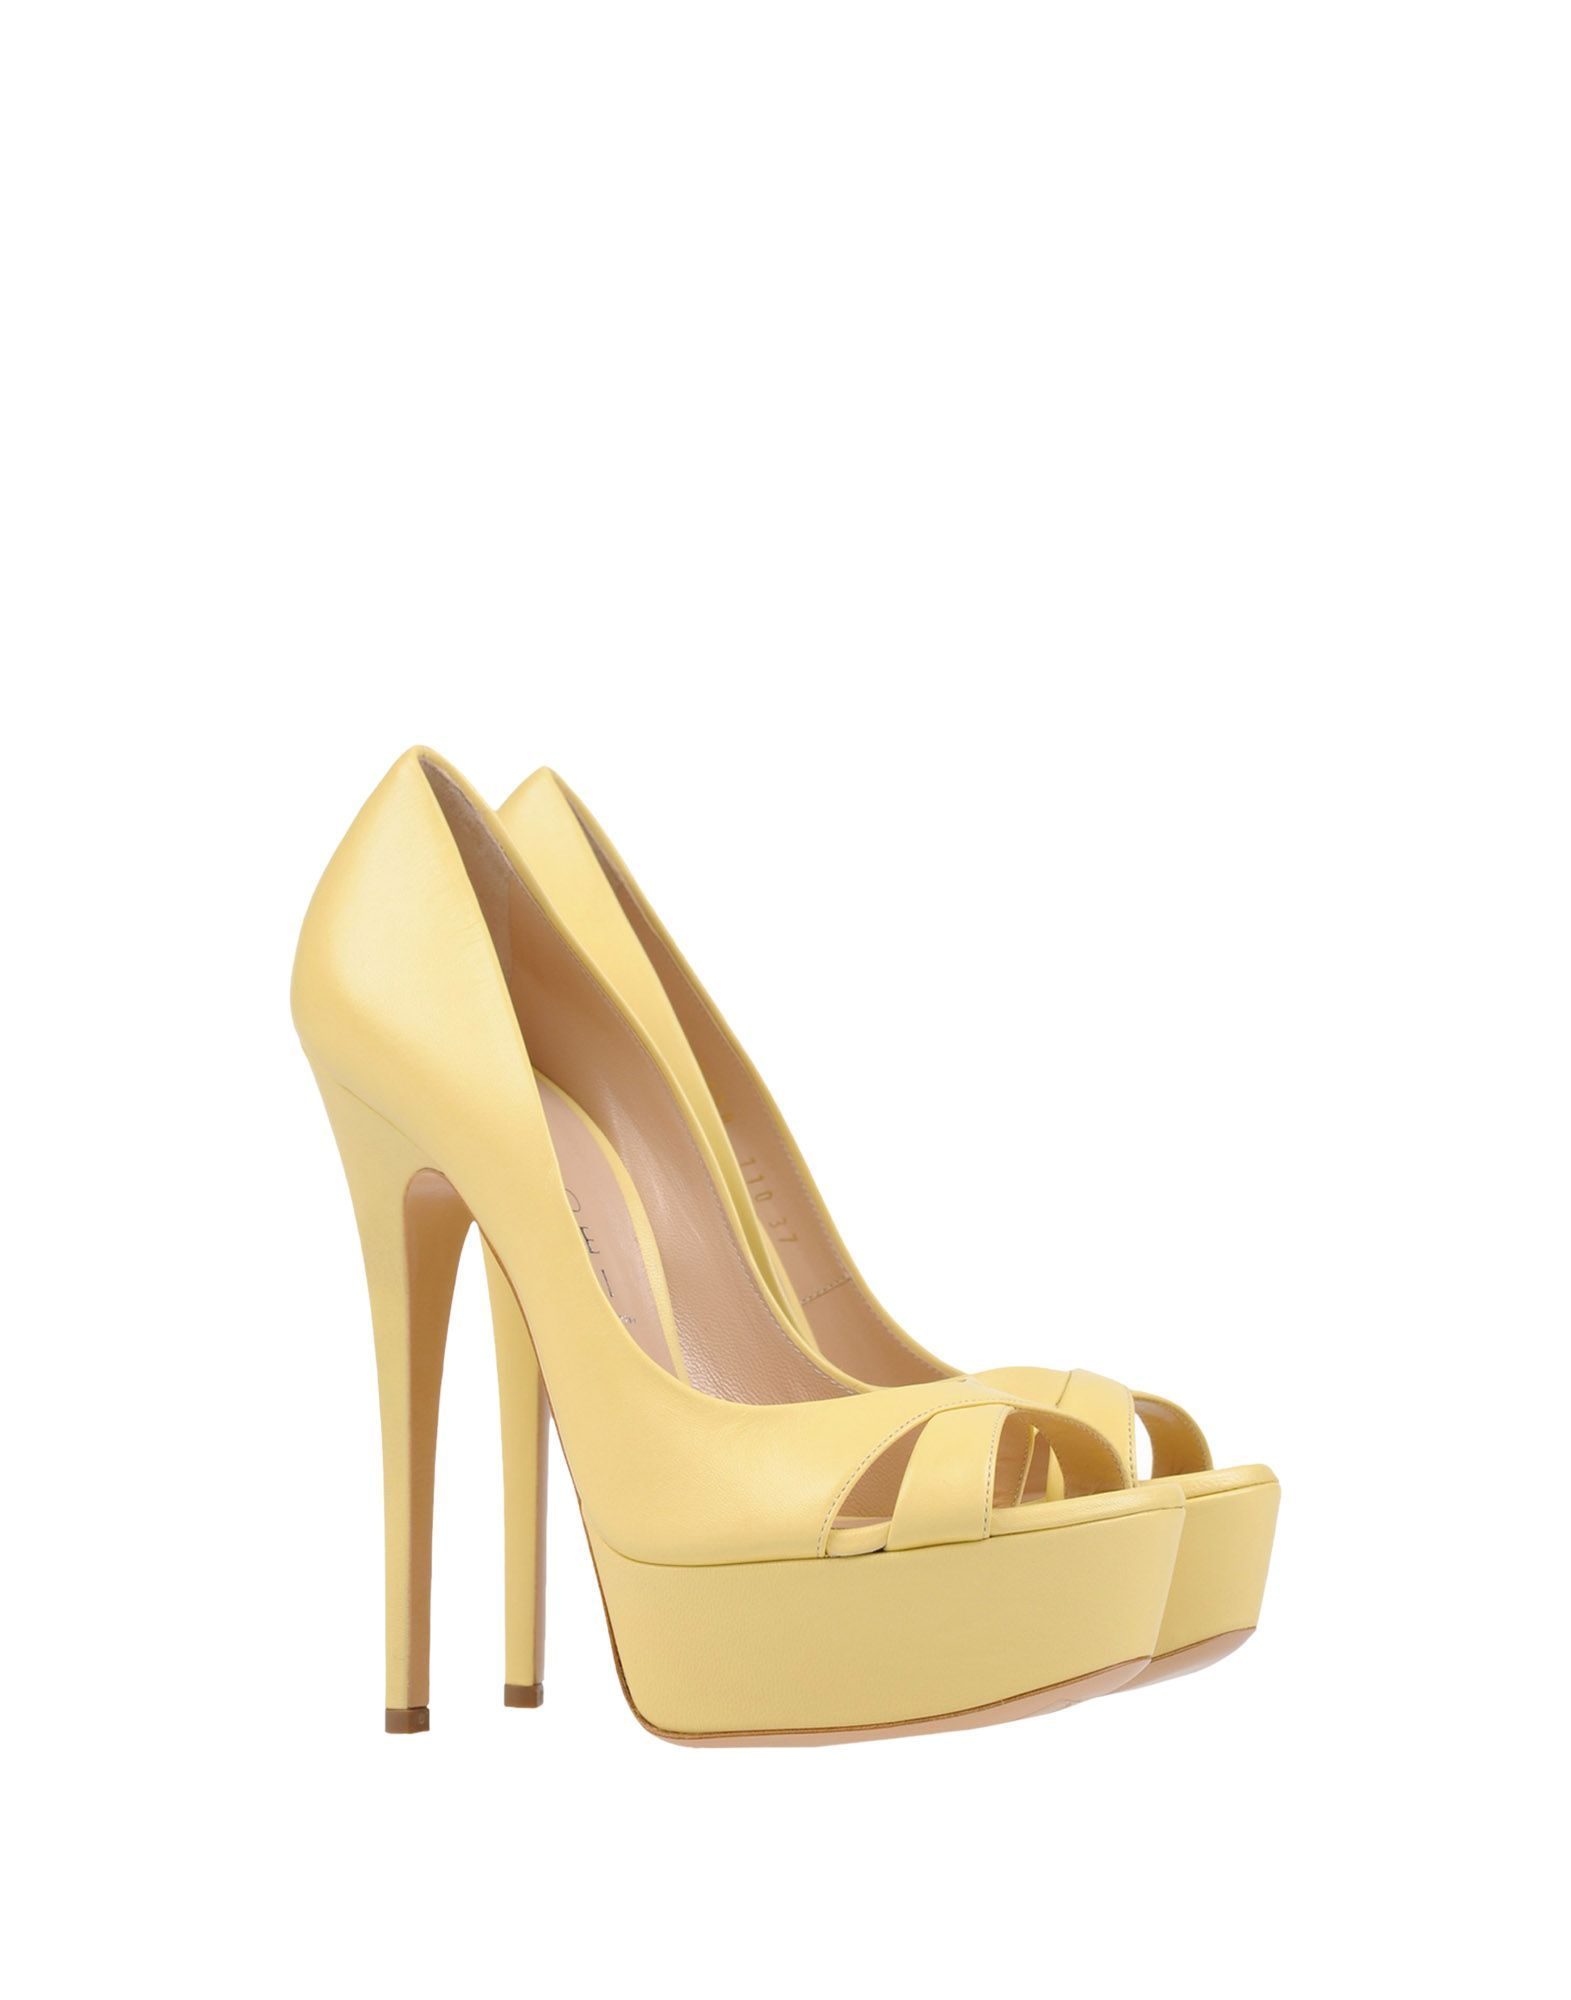 548700d1d82 Casadei Pump - Women Casadei Pumps online on YOOX United States - 11185378FM